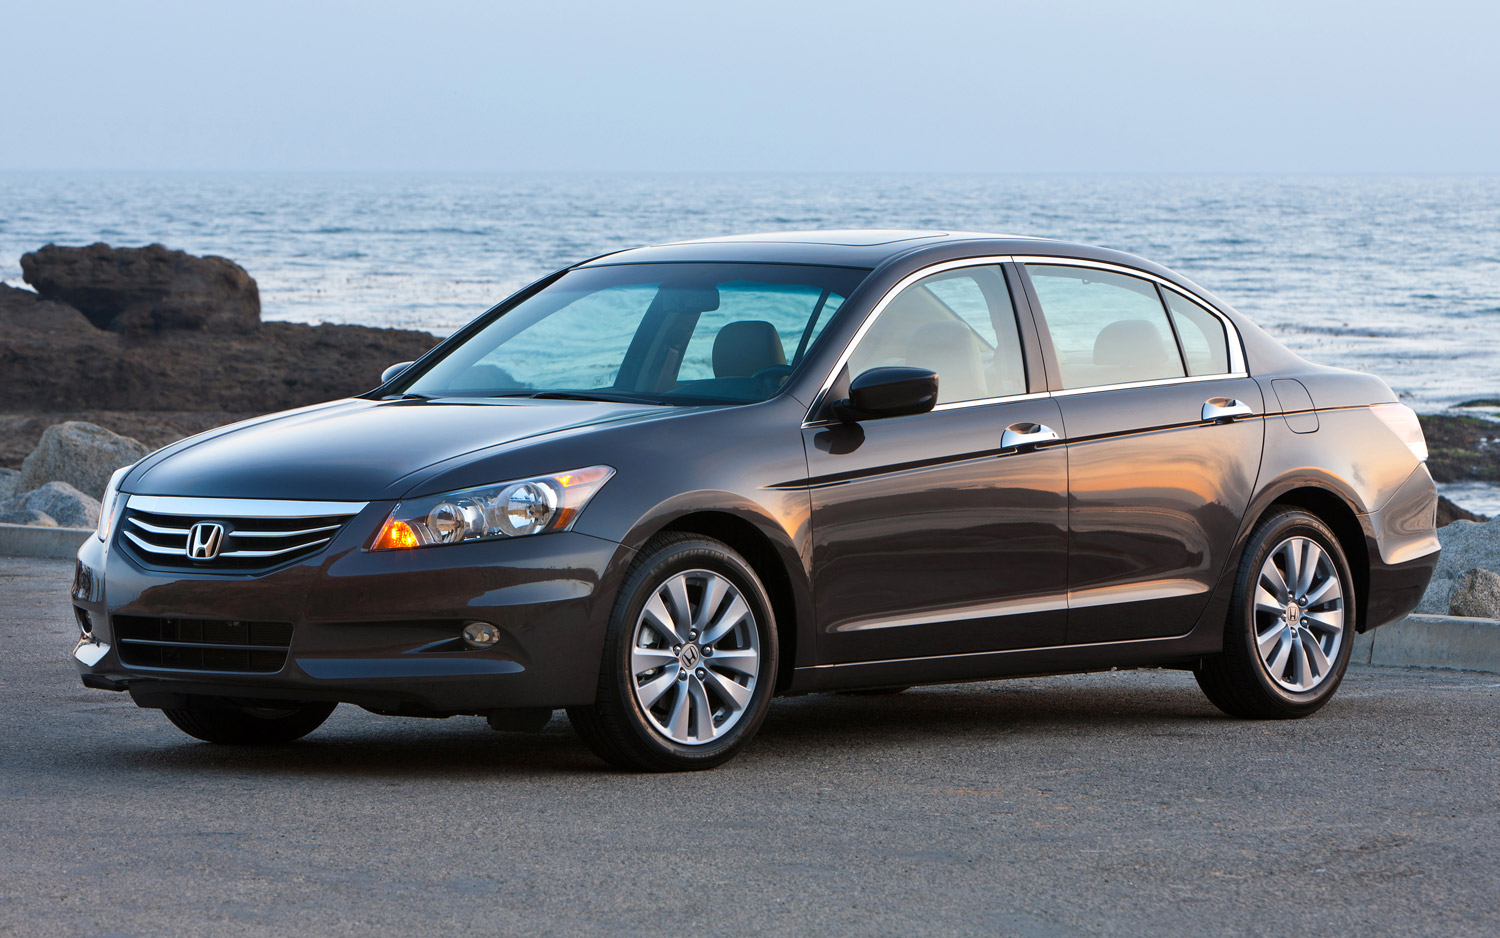 2012 Honda Accord #4